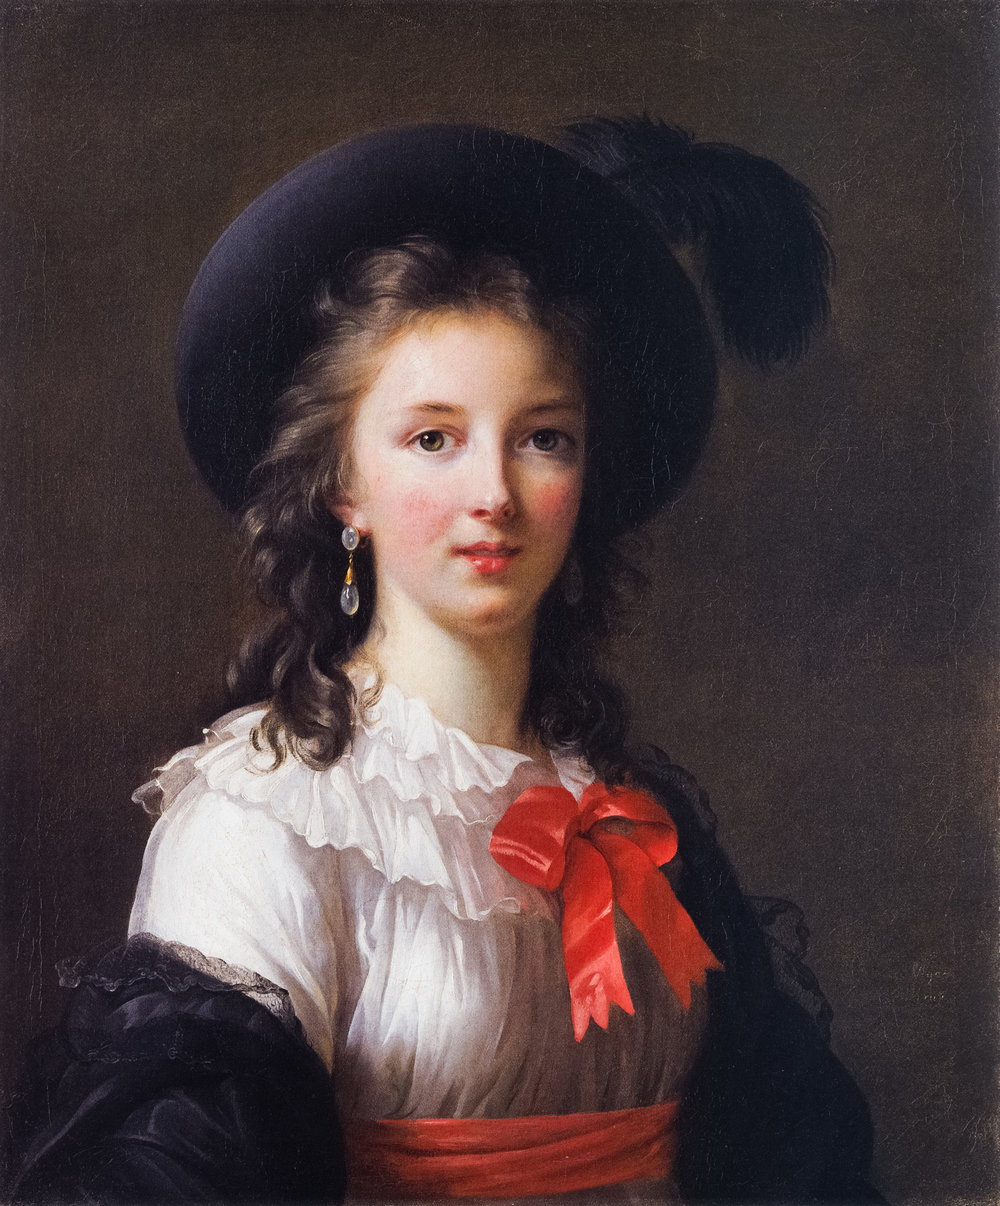 Elisabeth Vigée Lebrun, Self-Portrait, circa 1781-1782, oil on canvas, Kimbell Art Museum